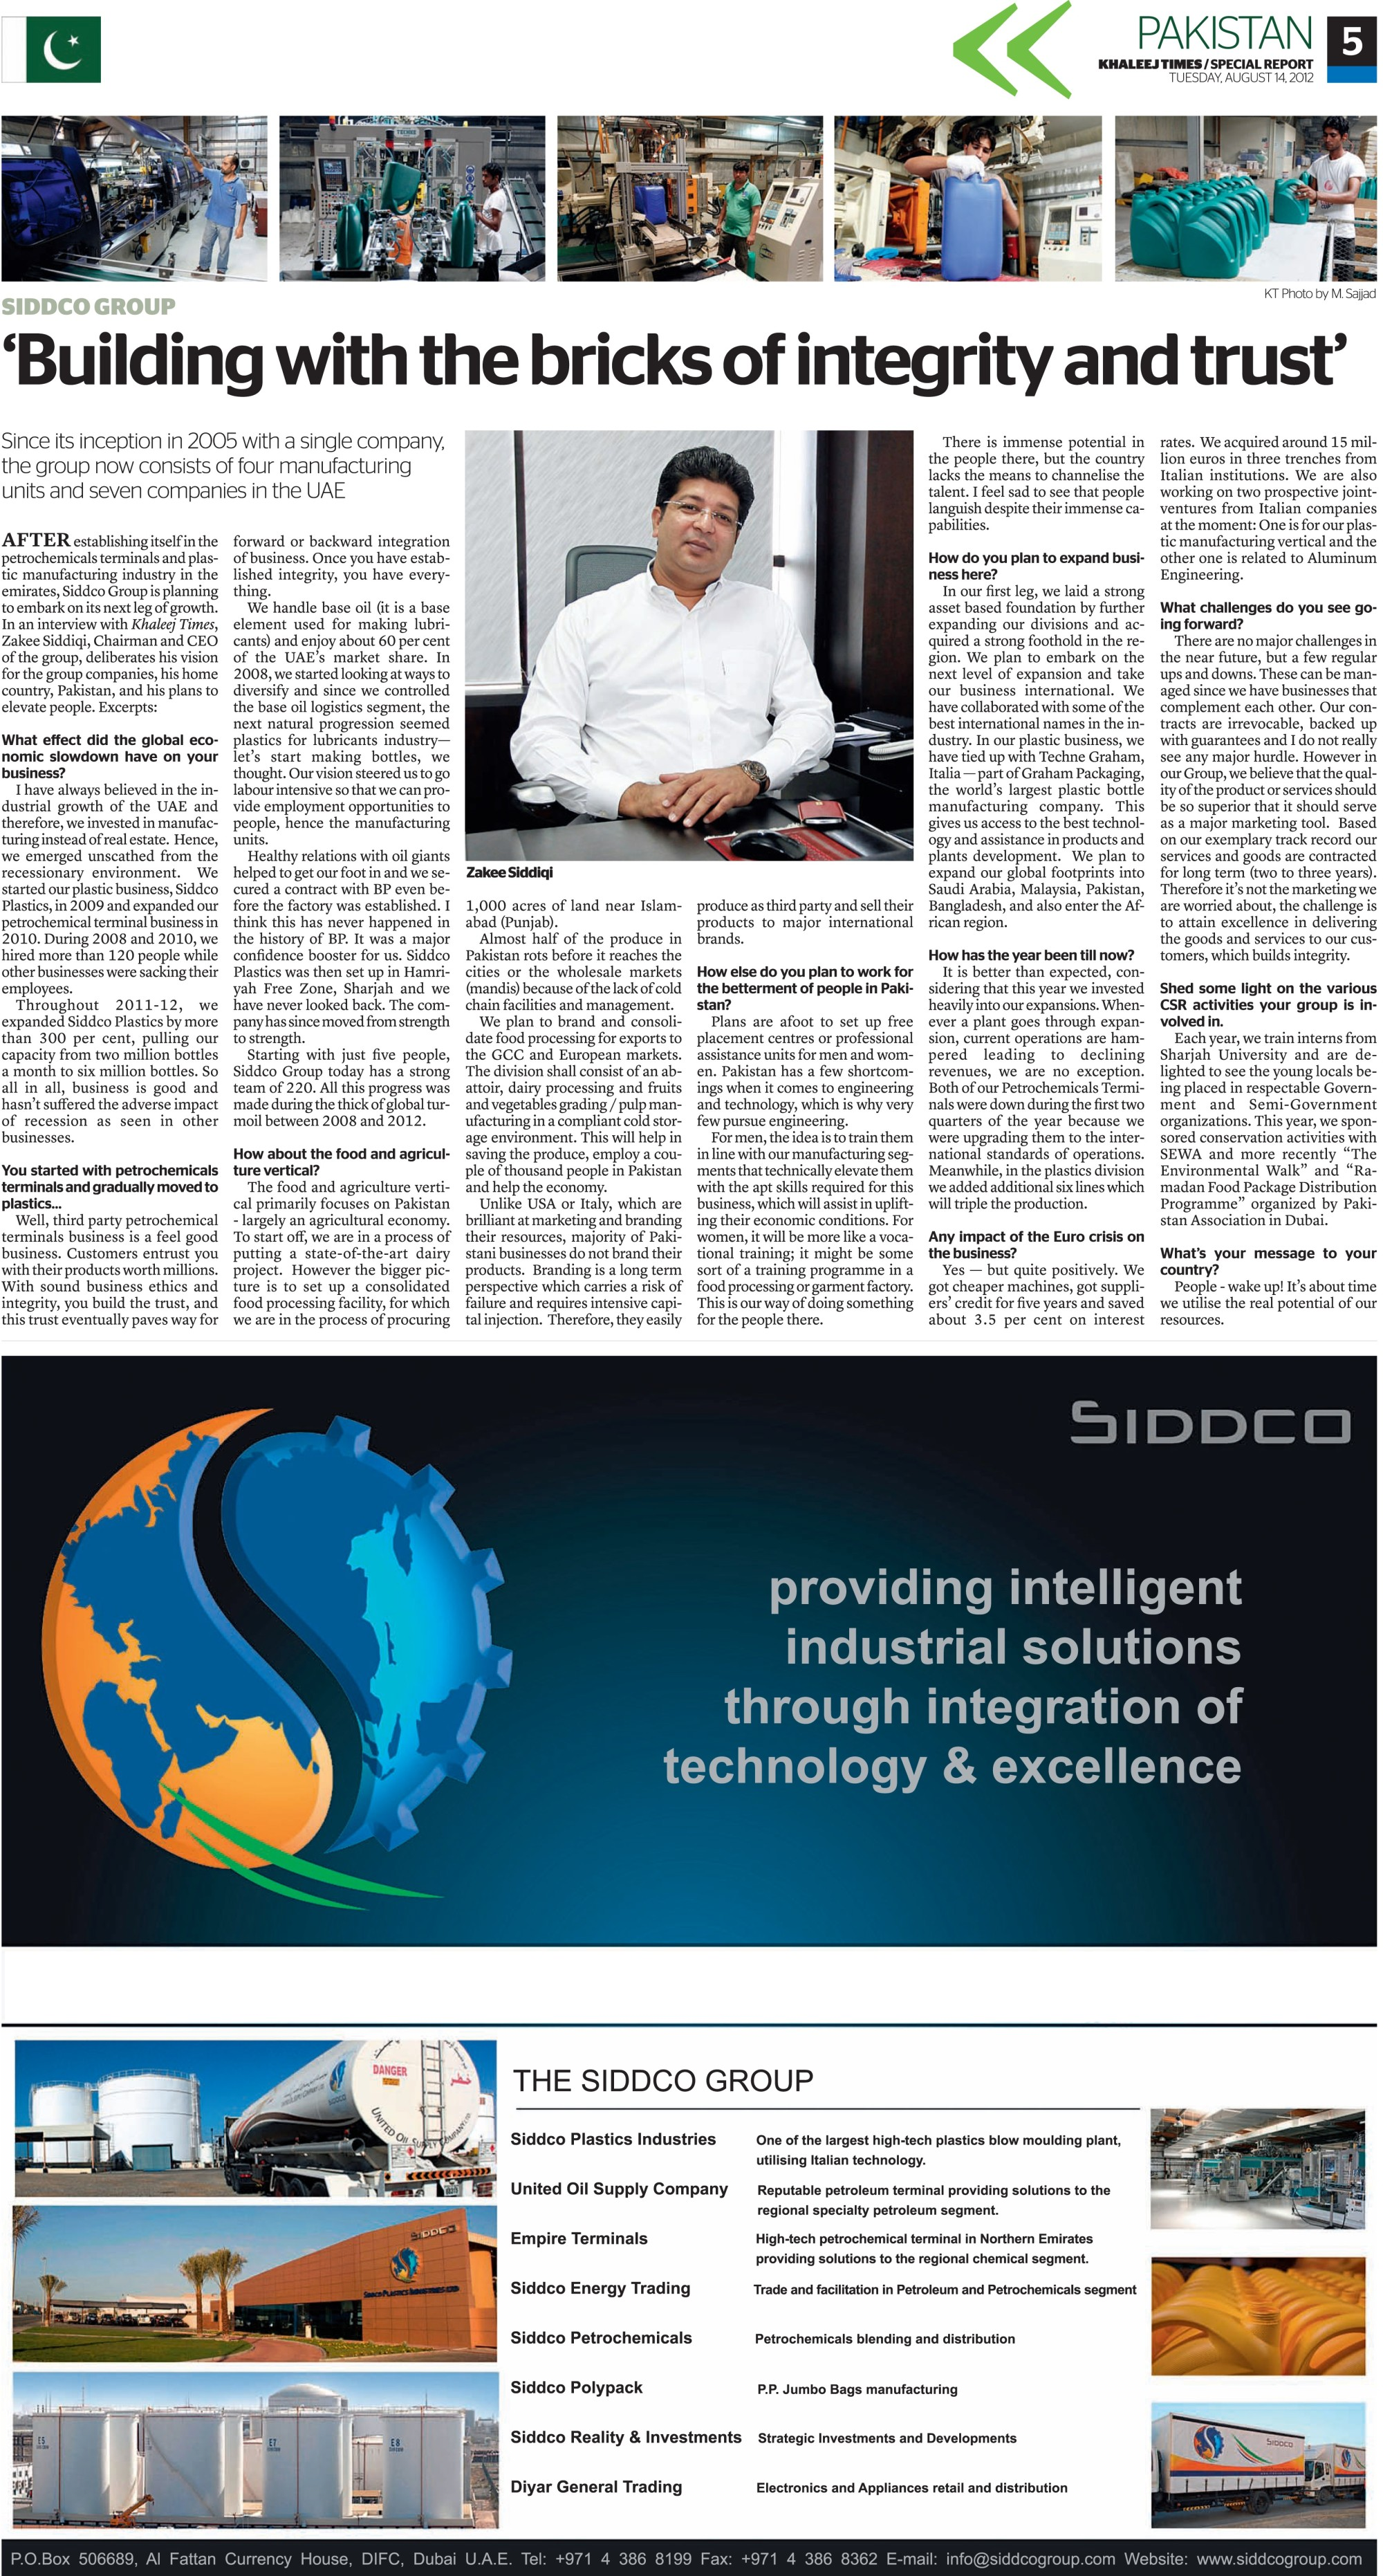 Khaleej Times-Siddco Article 14 Aug 2012